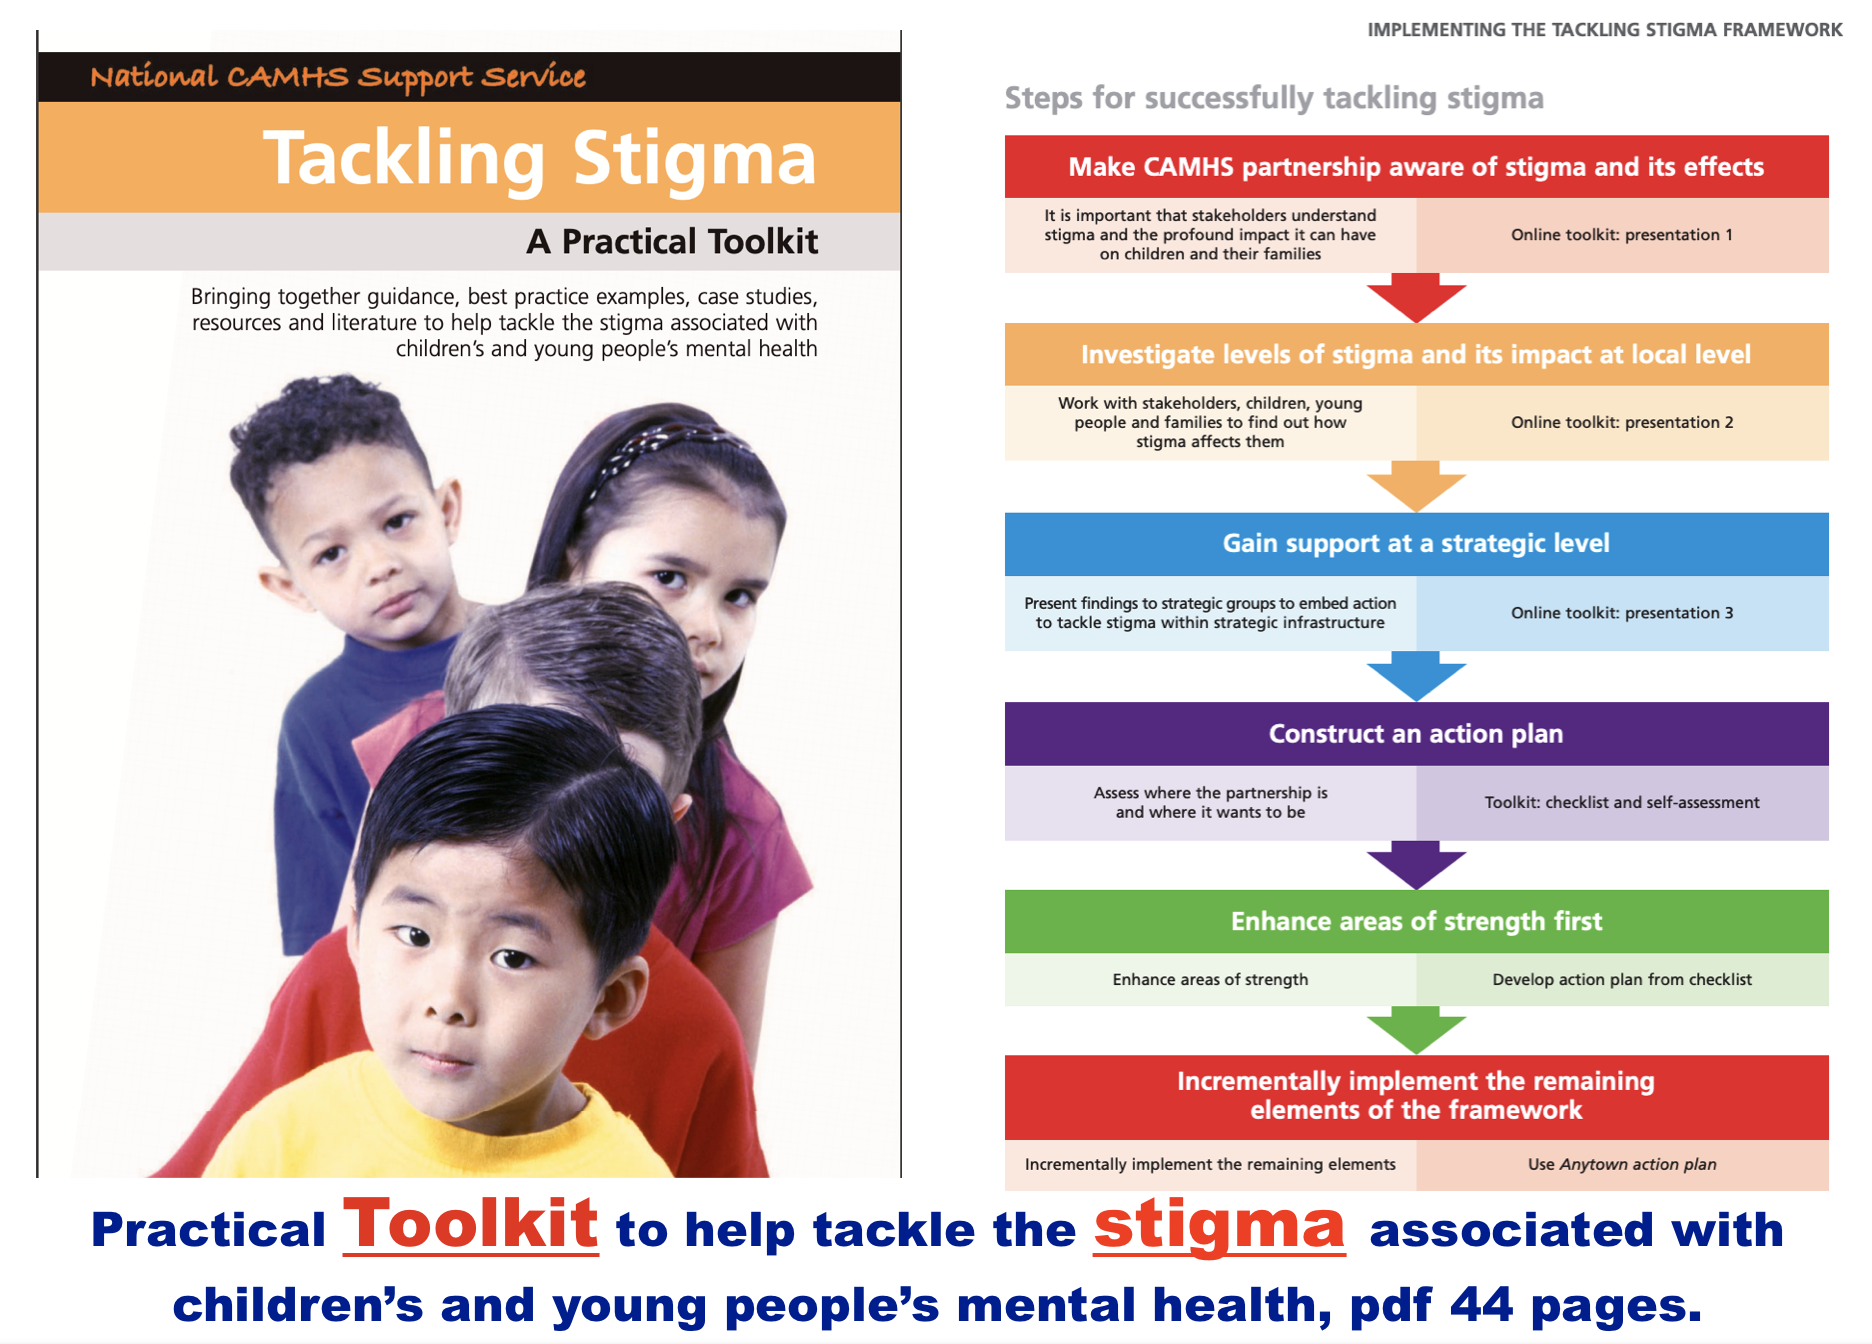 Practical Toolkit to help tackle the stigma associated with